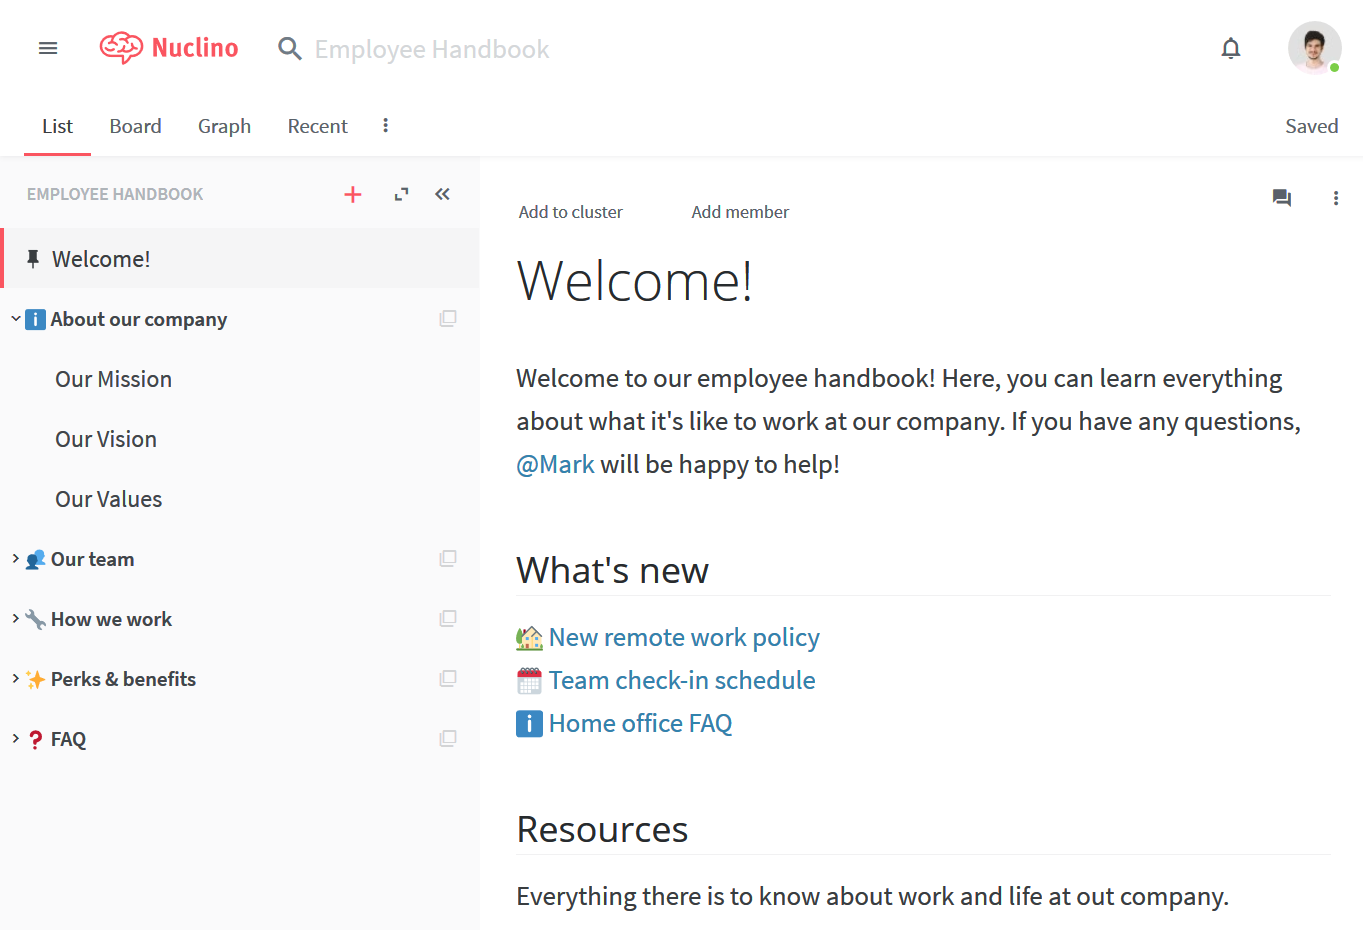 Internal wiki for new hire orientation